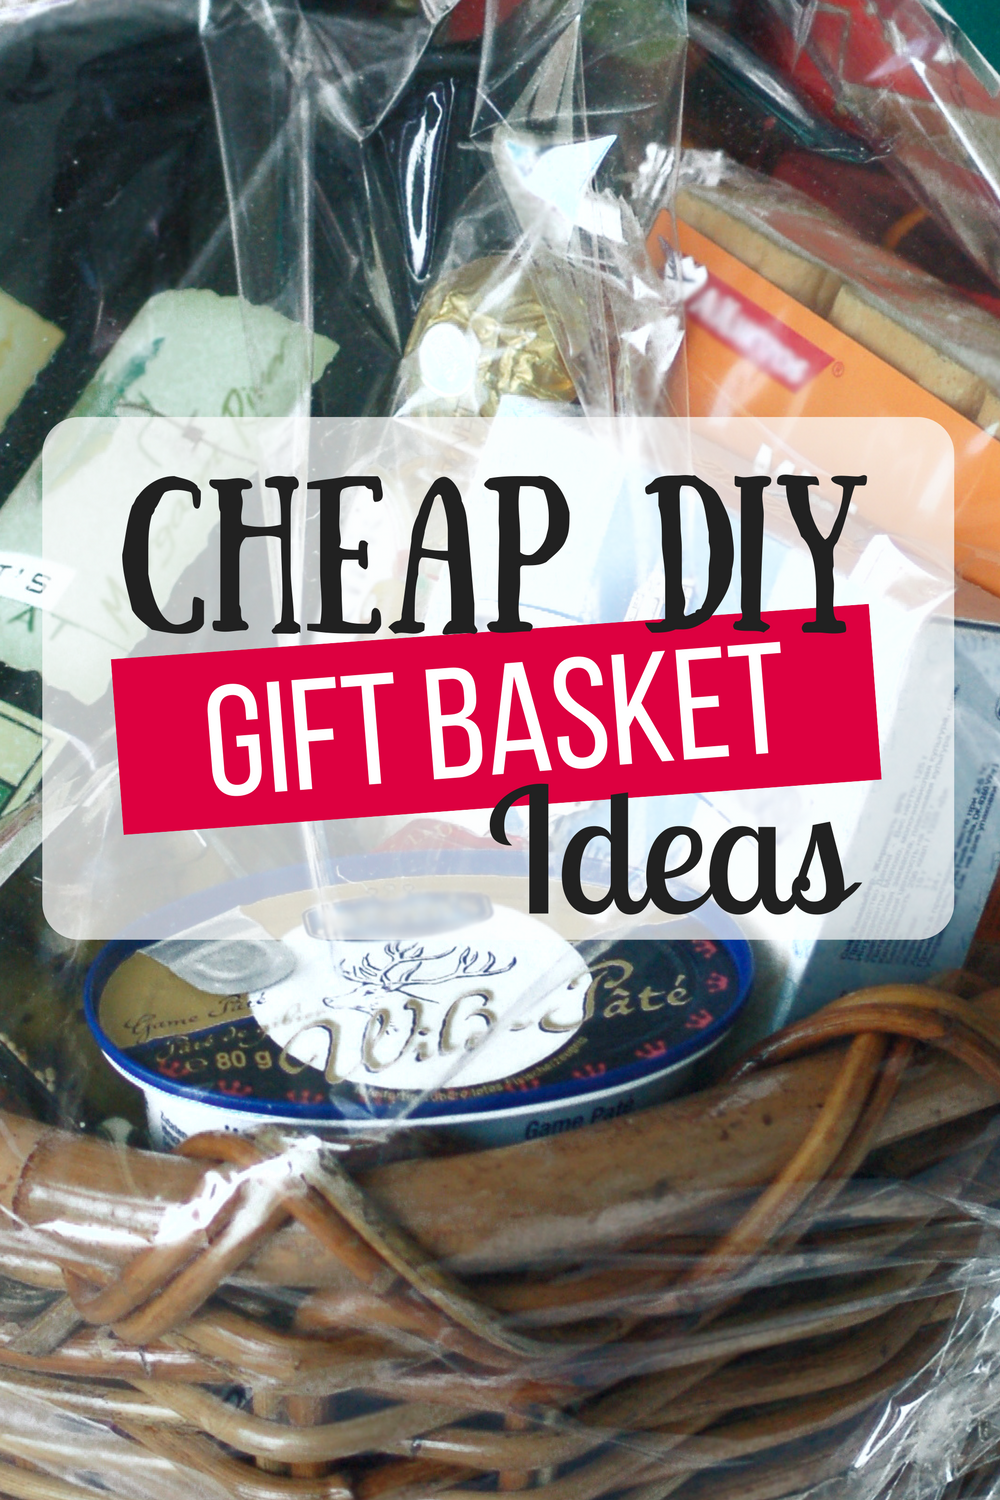 Cheap diy gift baskets the busy budgeter cheap diy gift baskets ideas perfect timing so many great ideas i was negle Images